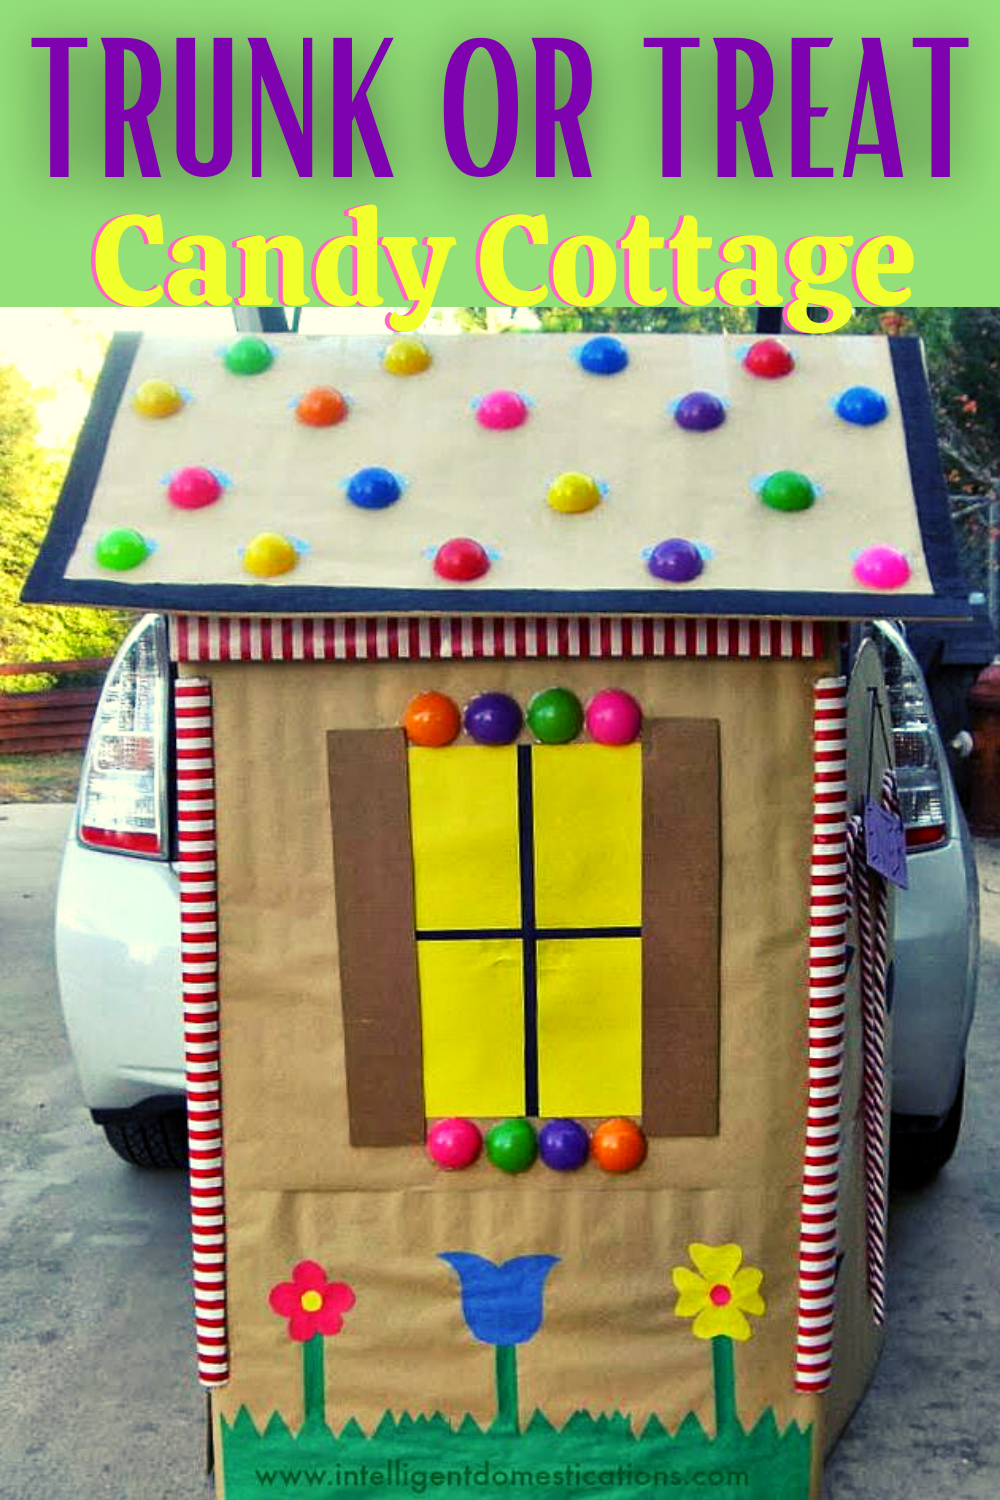 An image of a  Halloween Trunk or Treat Design that looks like a candy cottage sitting behind a car for church trunk or treat even